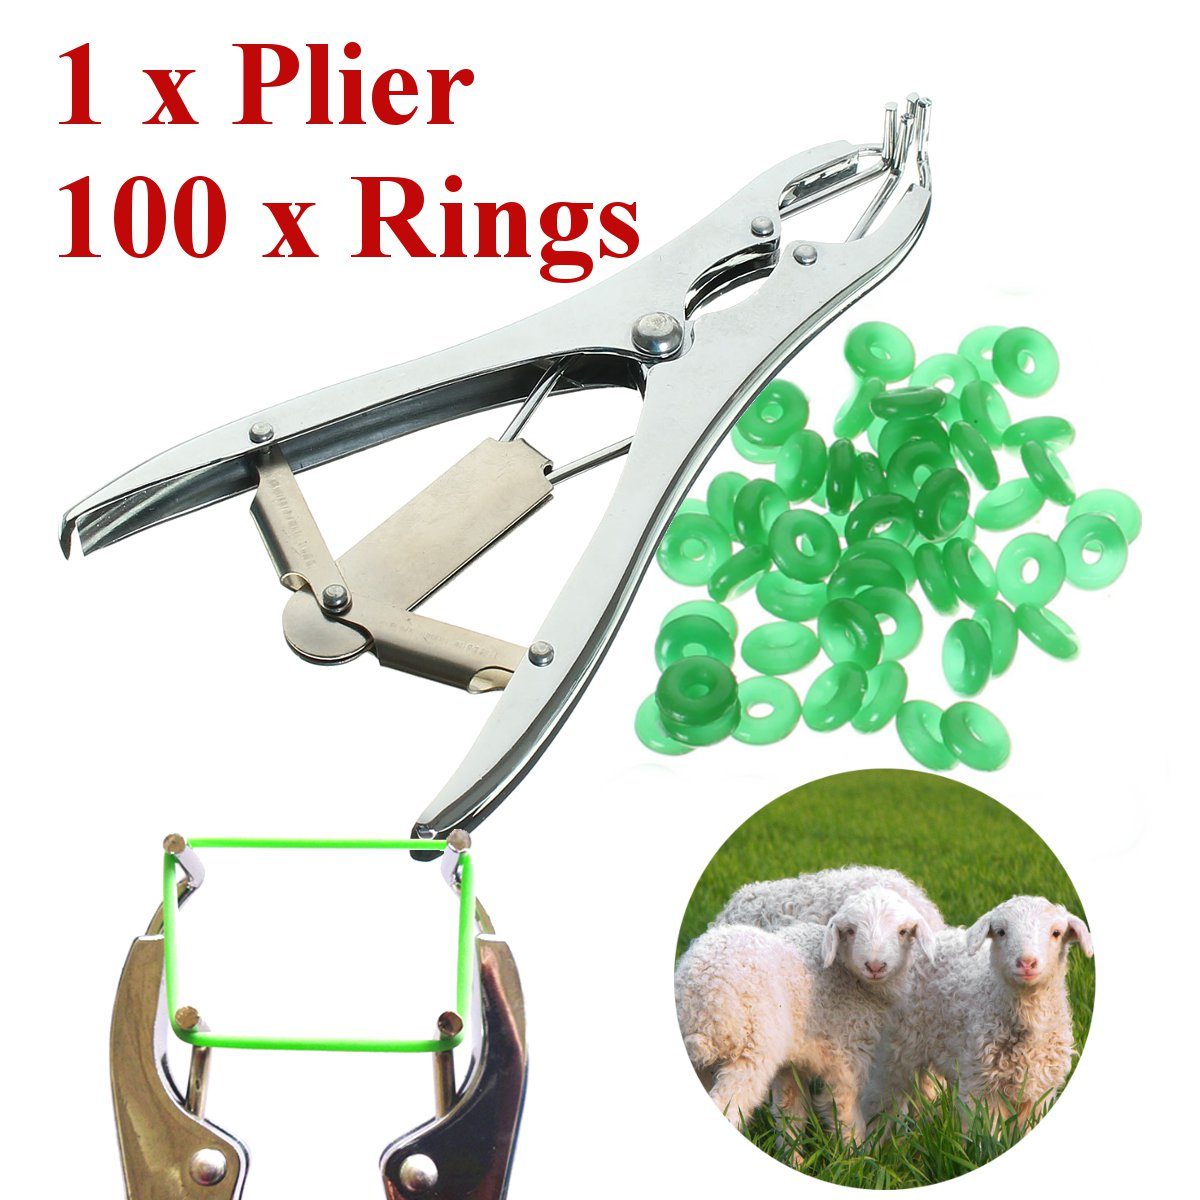 1 Plier for Sheep Cattle Castration Banding Tail Applicator Farm w/ 100 Rings Щипцы